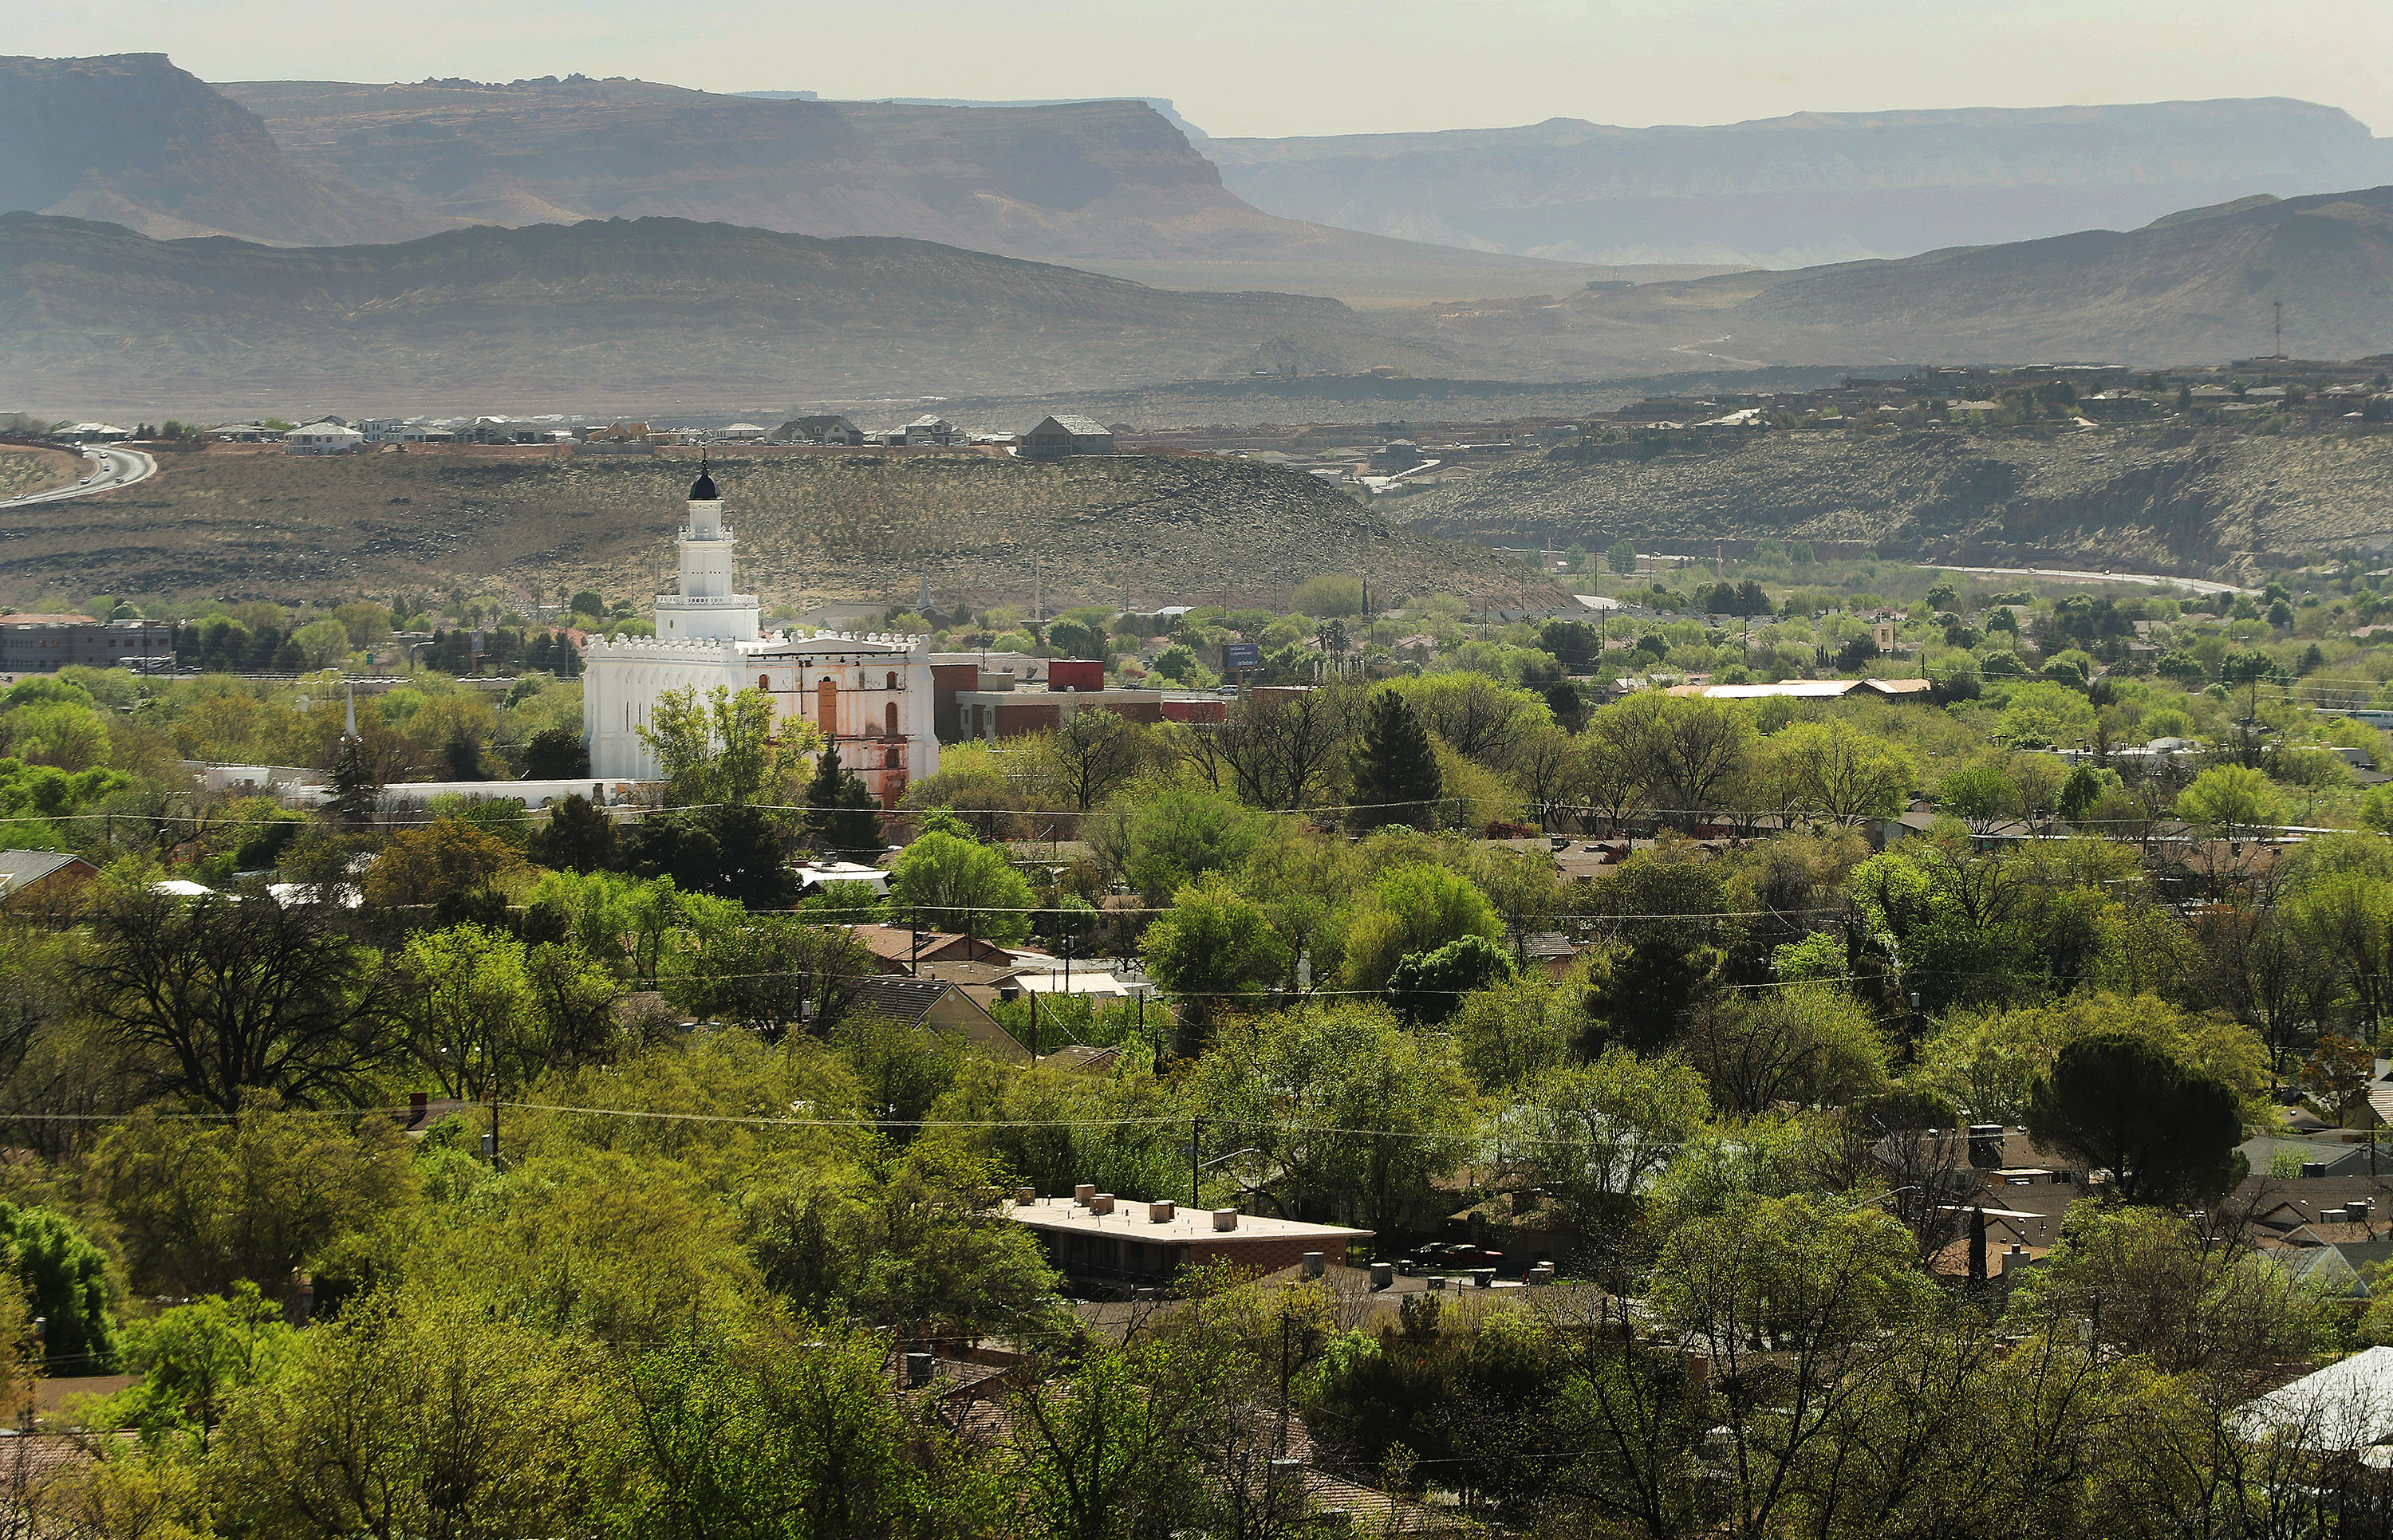 The St. George Utah Temple of The Church of Jesus Christ of Latter-day Saints is under construction in St. George on Thursday, April 8, 2021.